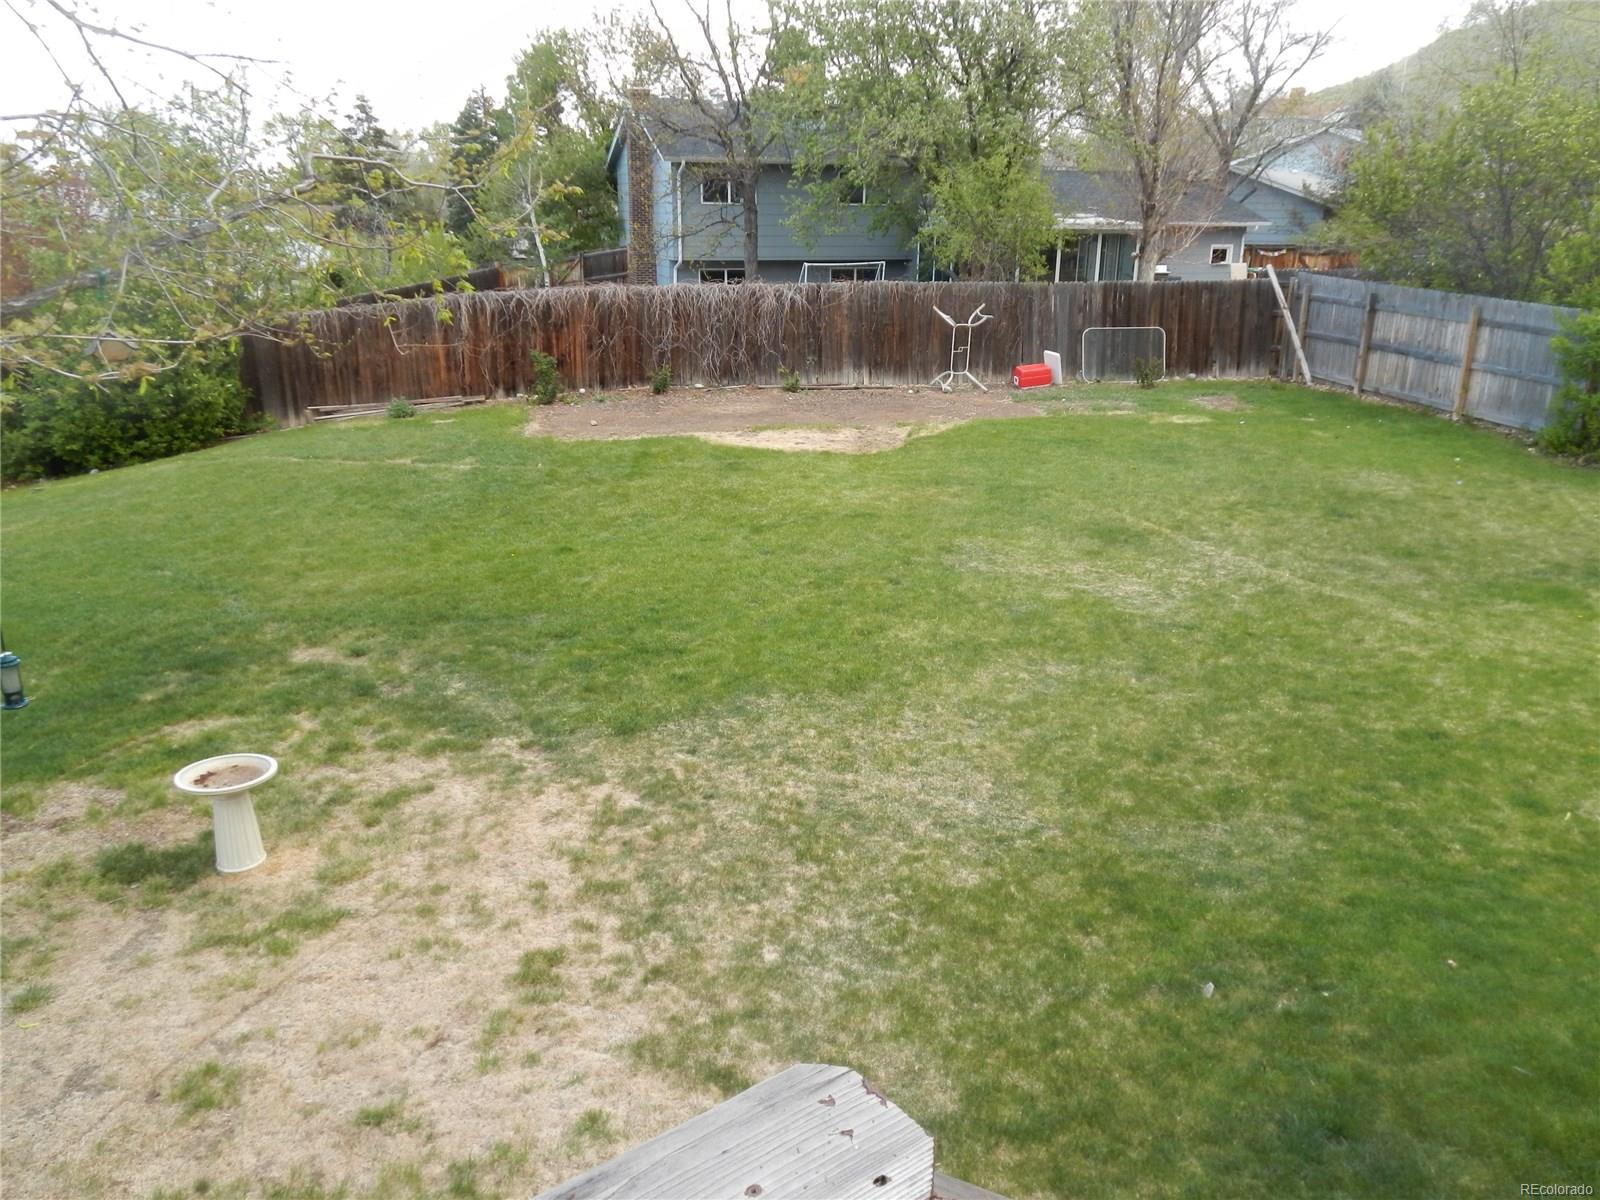 MORE THAN 1/4 ACRE CUL-DE-SAC LOT WITH SPRINKLER SYSTEM